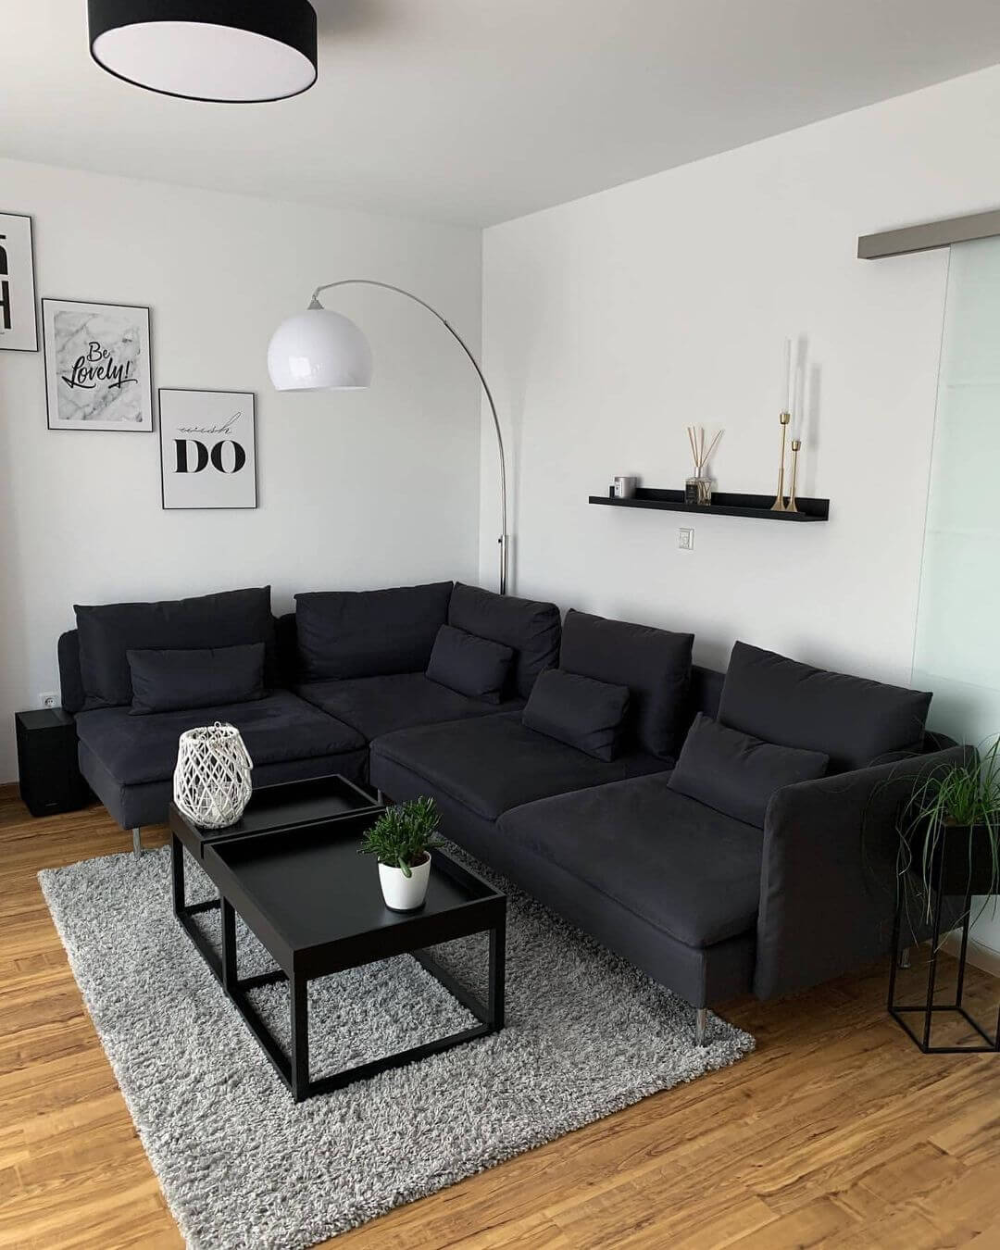 36 Living Room Decor Ideas For You In 2021 In 2021 Living Room Decor Apartment Simple Living Room Decor White Living Room Decor